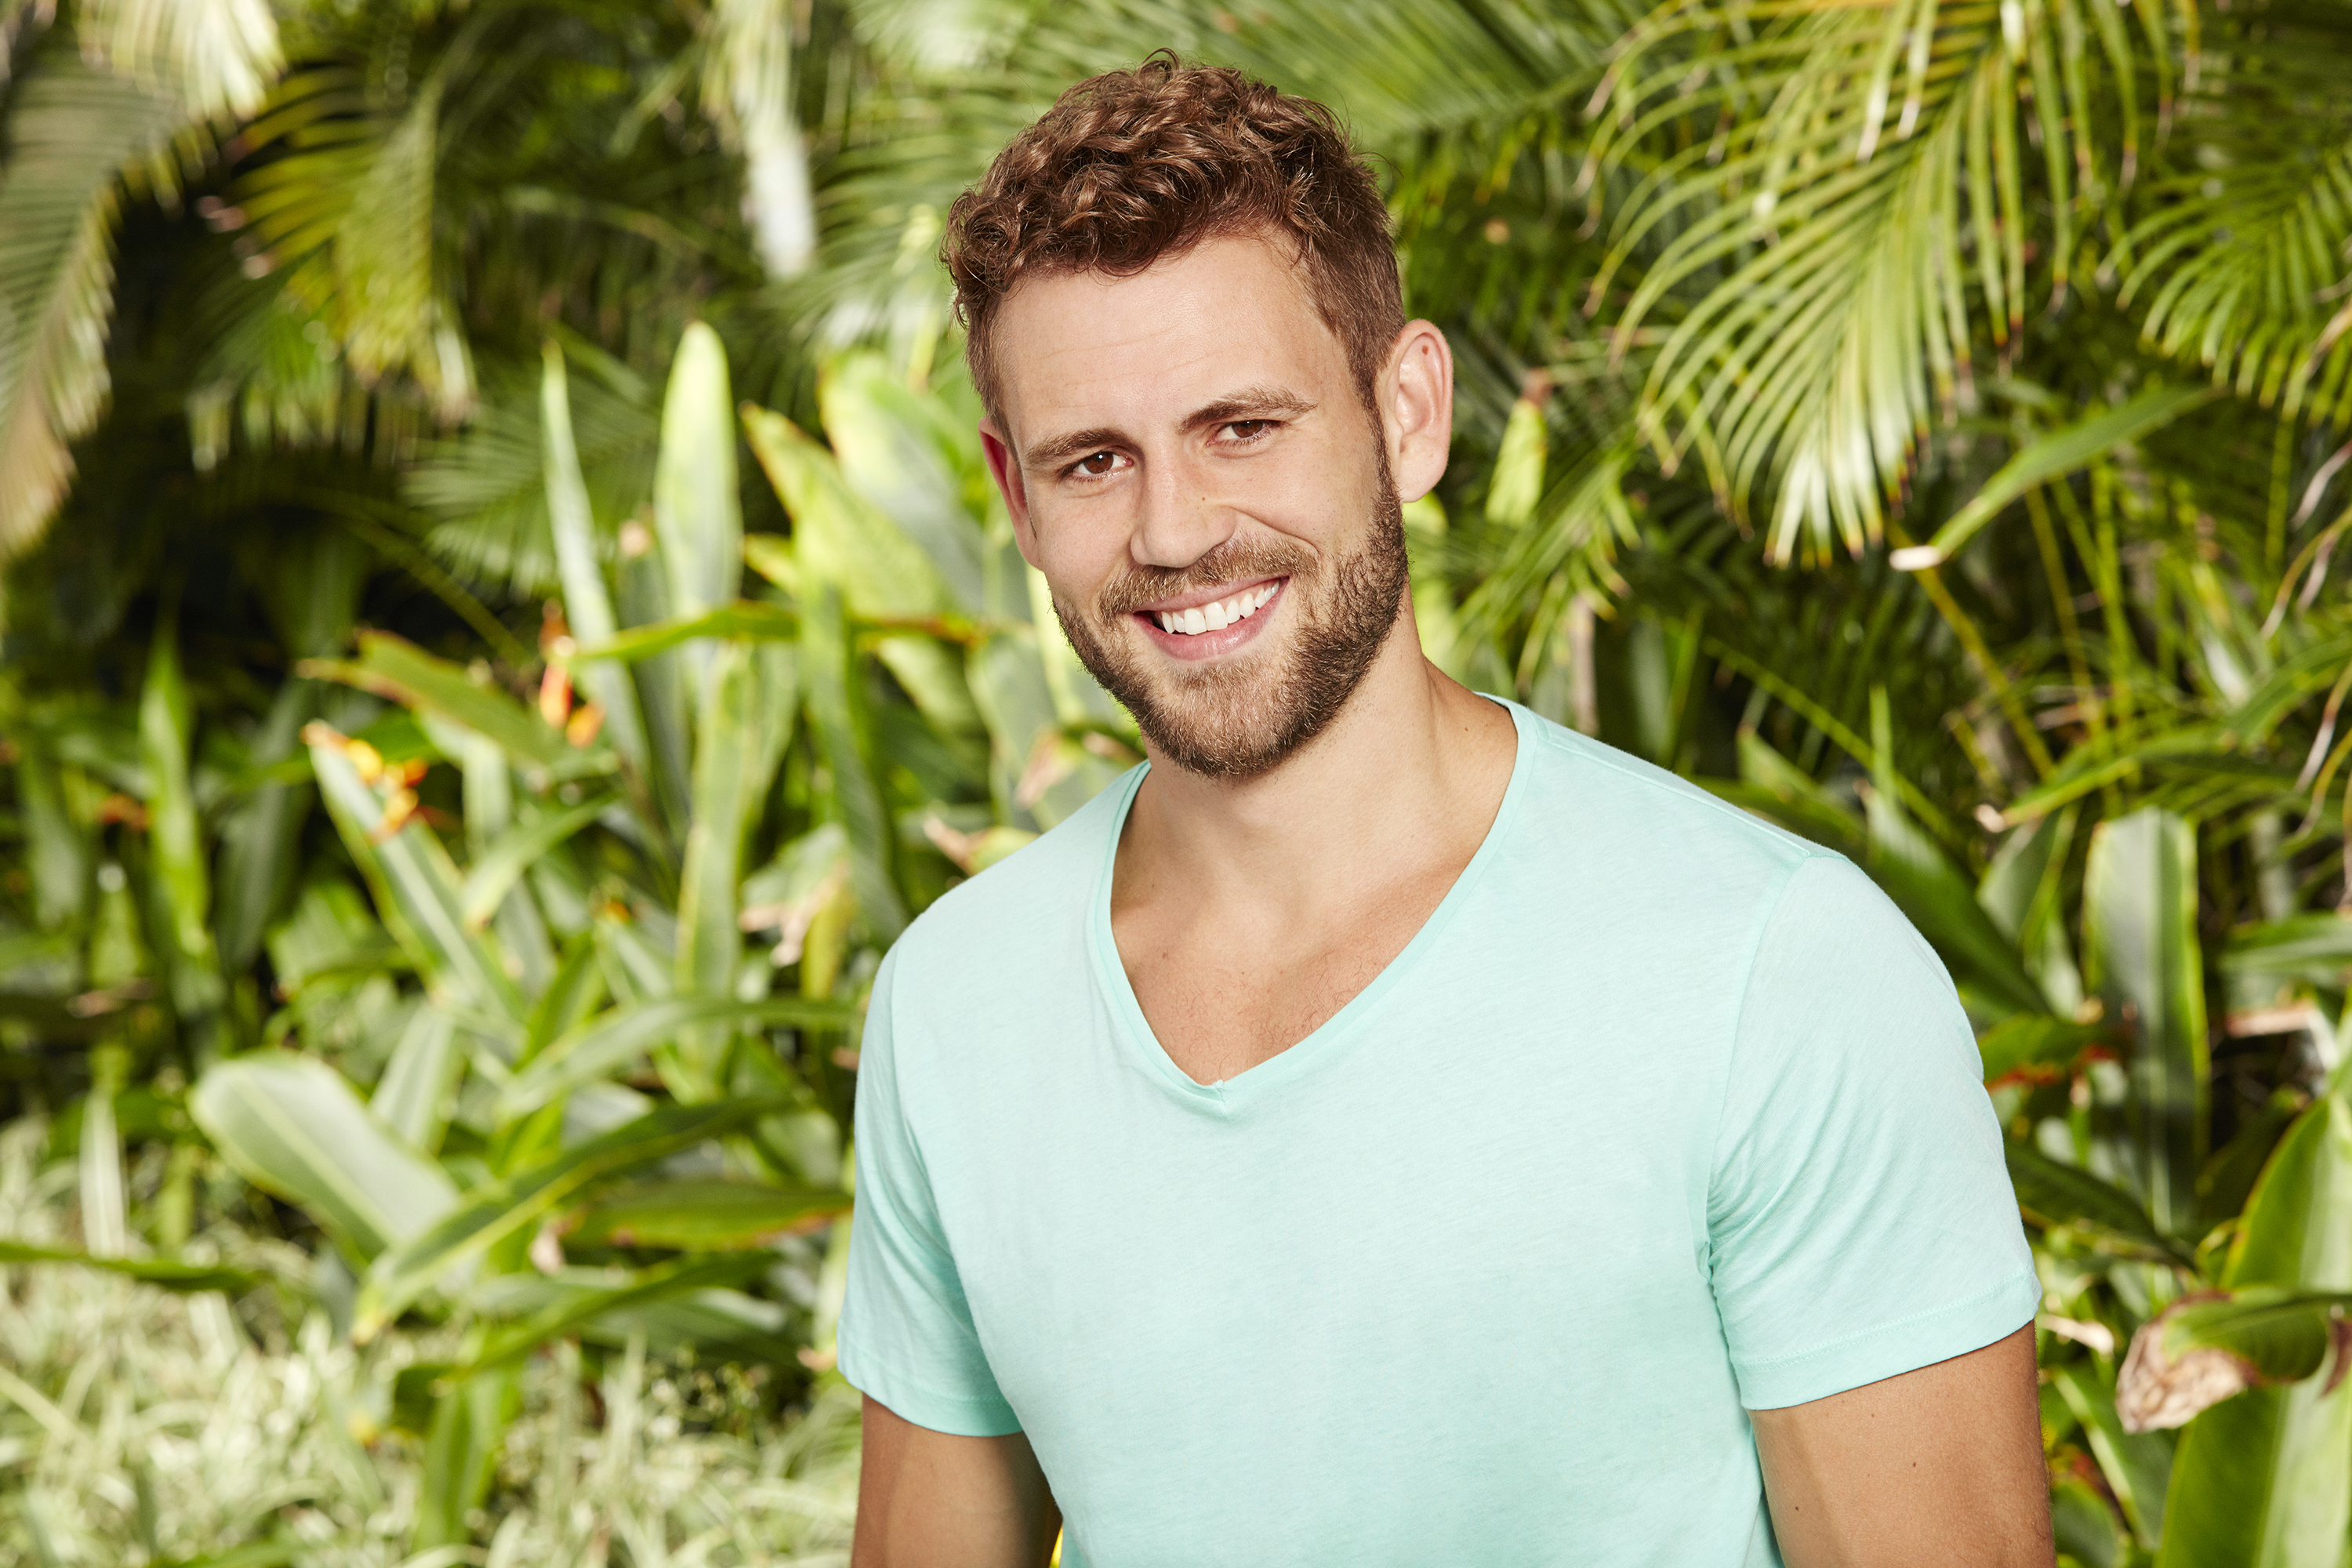 Nick Viall will appear as the star of The Bachelor in 2017.